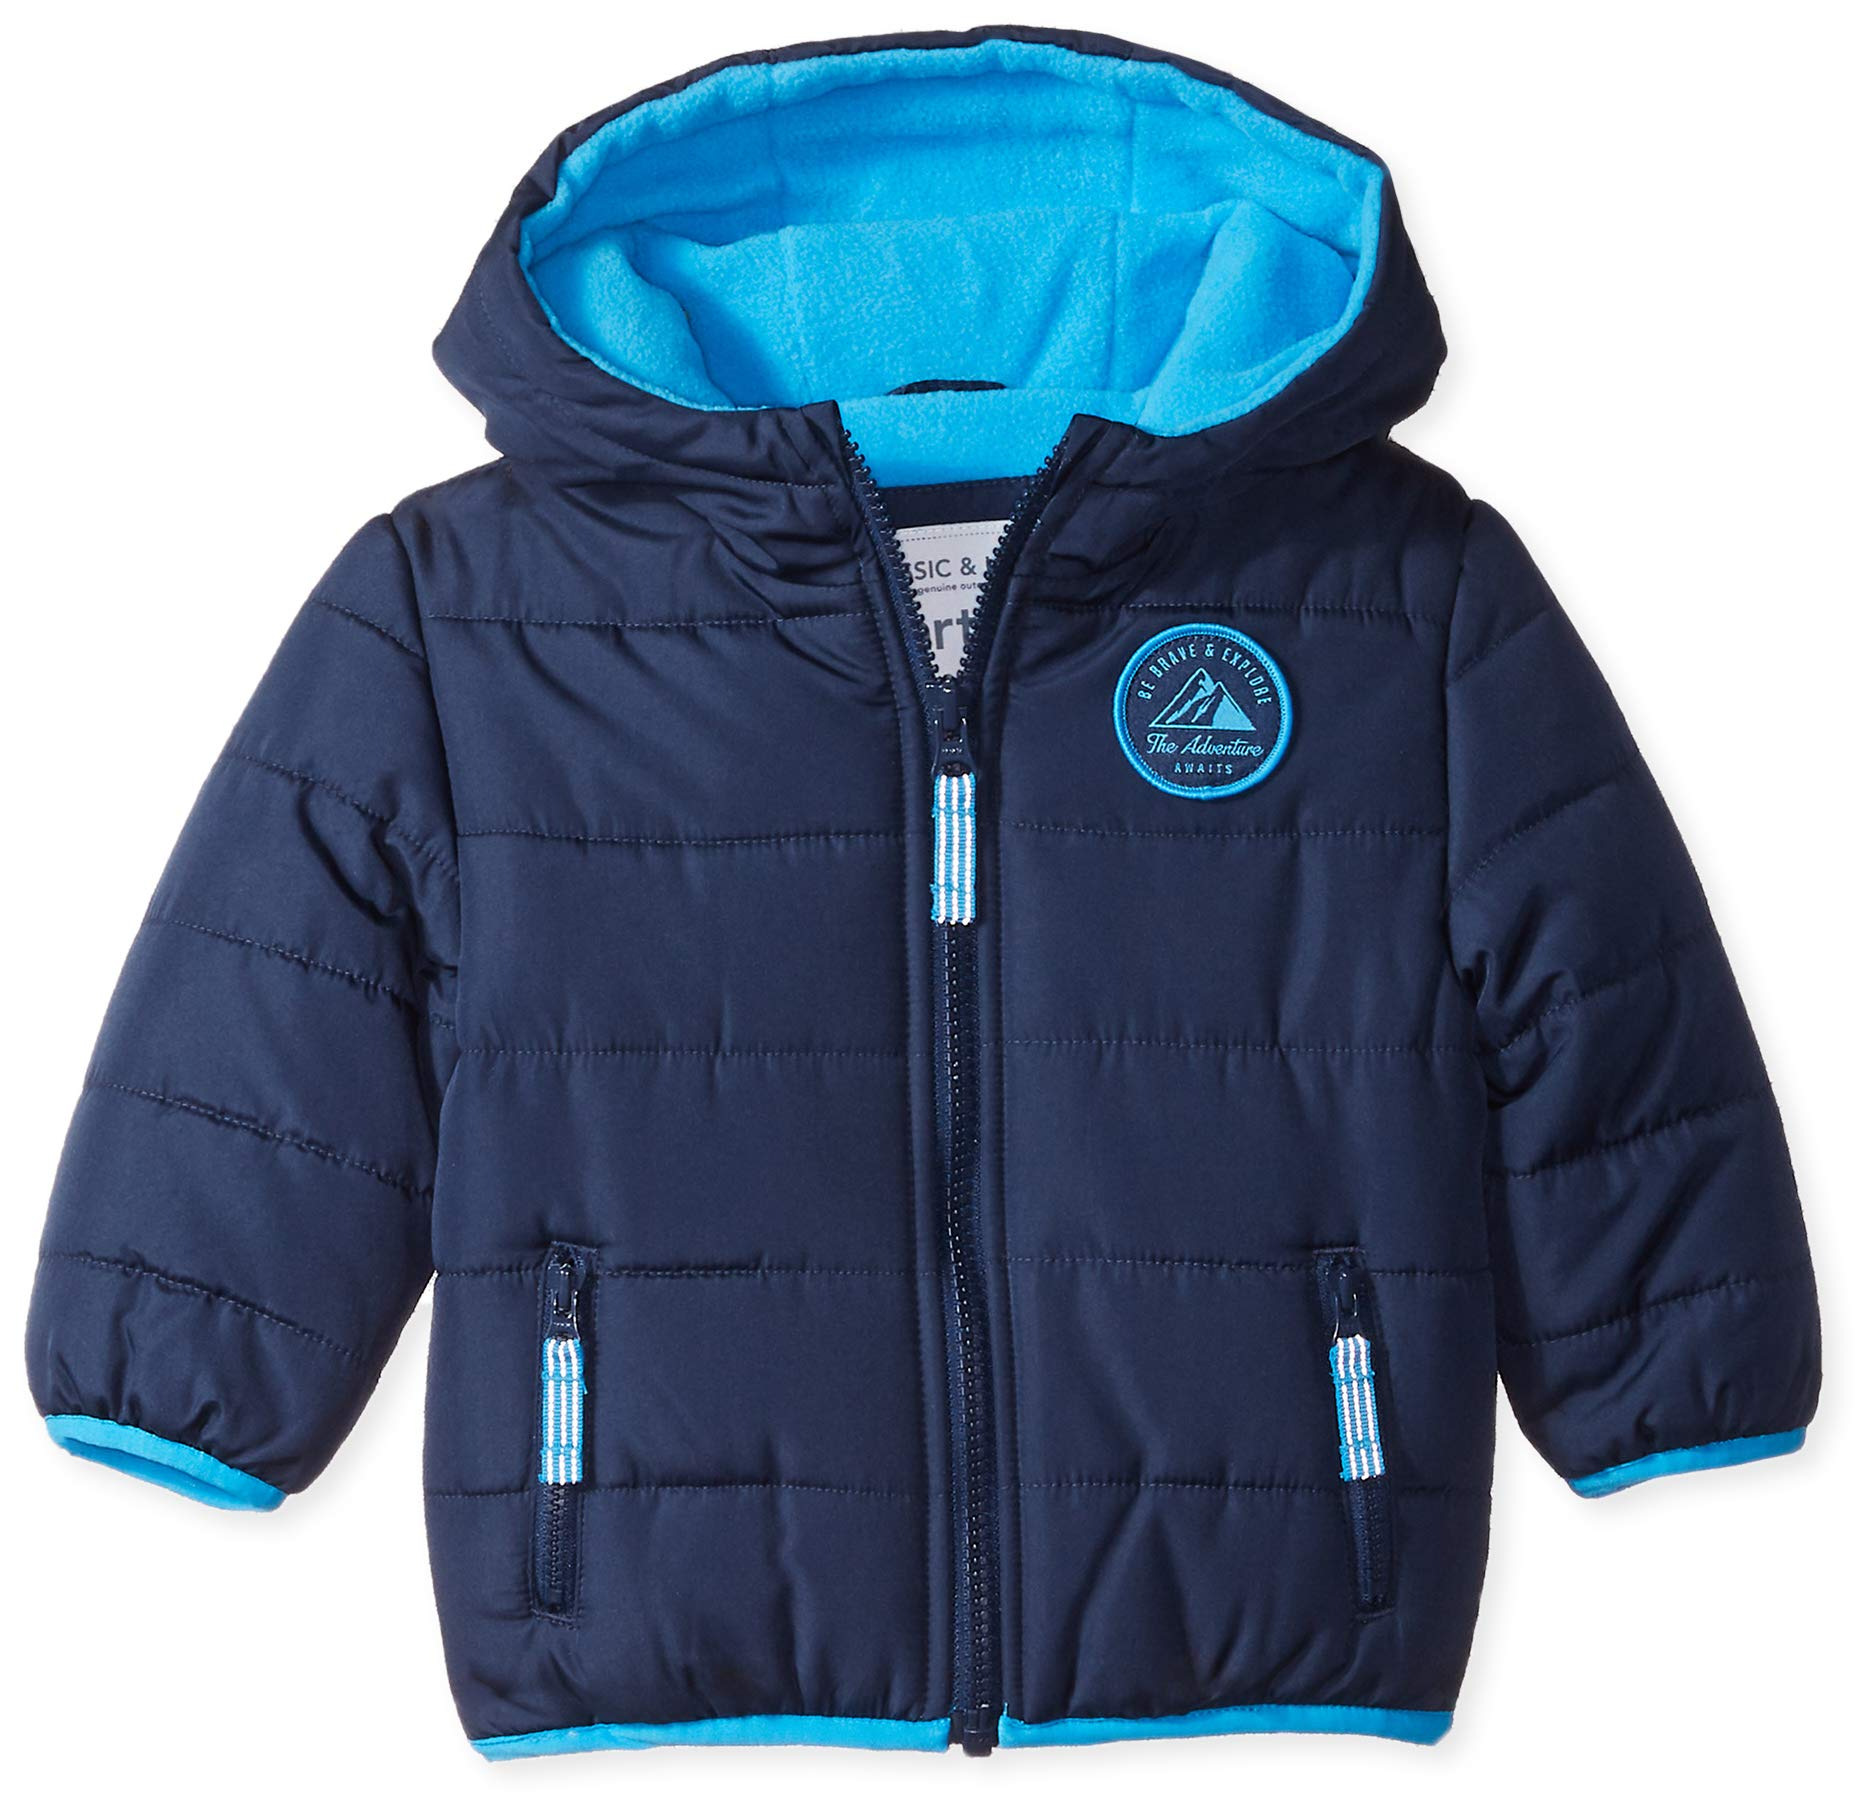 Carter's Baby Boys Adventure Bubble Jacket, Current Navy, 24M by Carter's